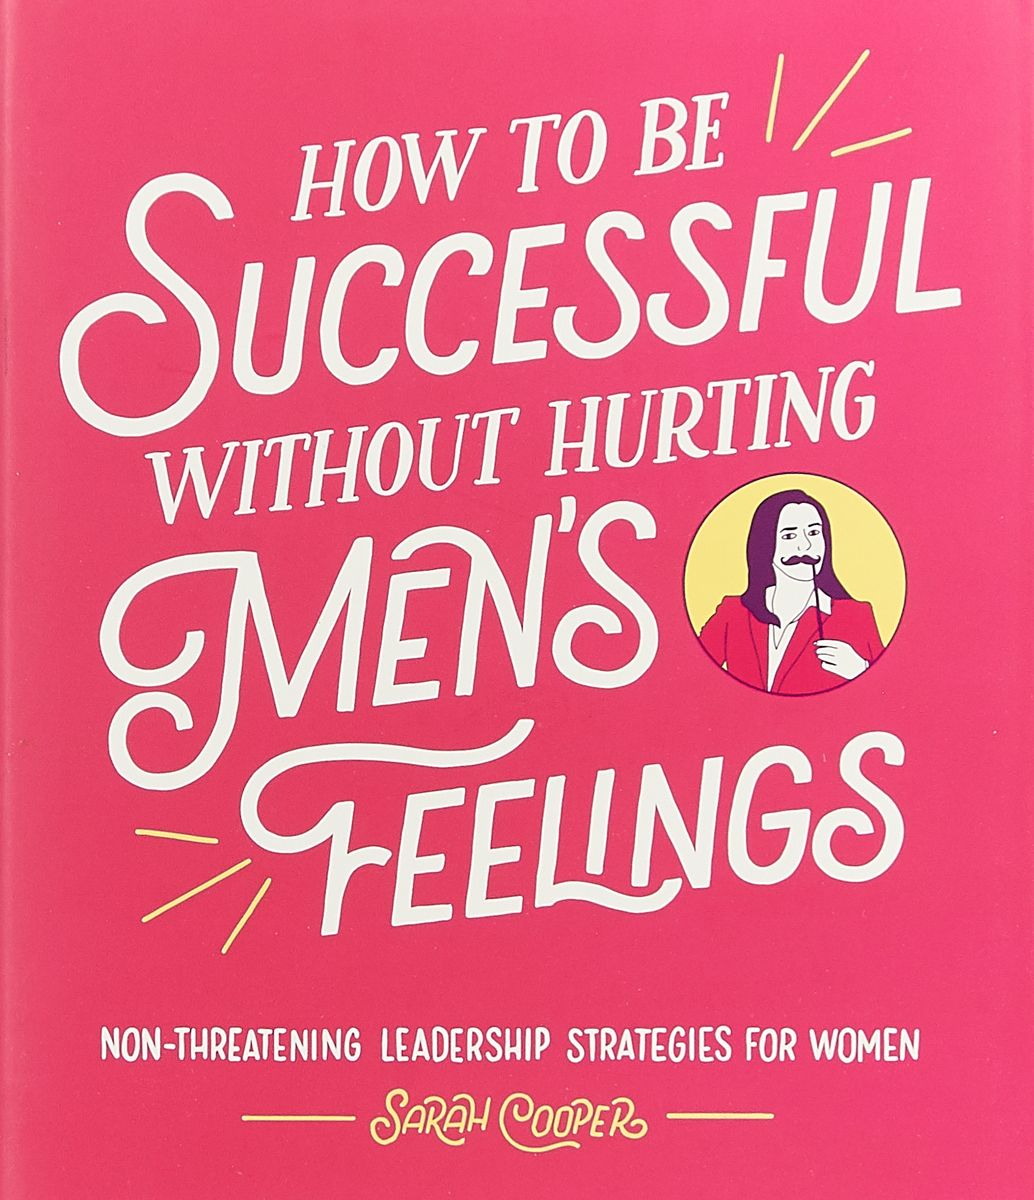 How to Be Successful Without Hurting Men's Feelings: Non-threatening Leadership Strategies for Women how to be successful without hurting men's feelings non threatening leadership strategies for women